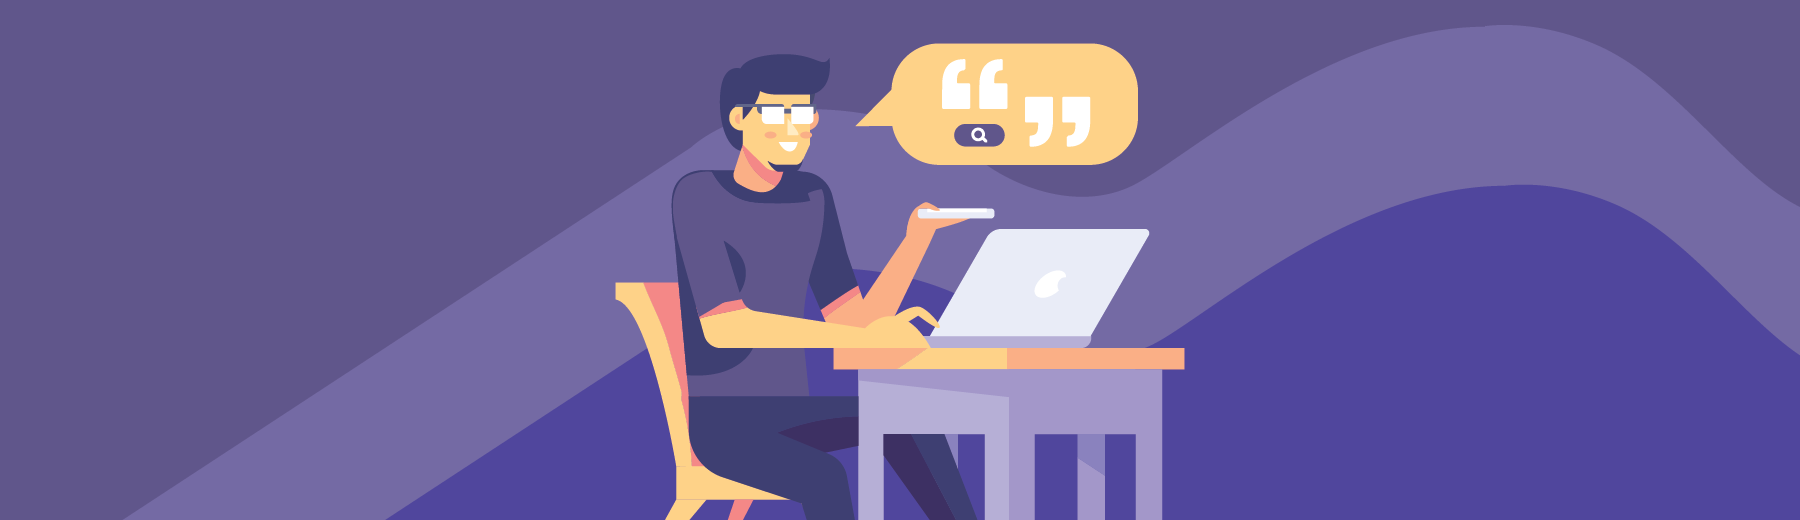 8 voice search statistics in 2019 and why they matter [Infographic] |  Brafton